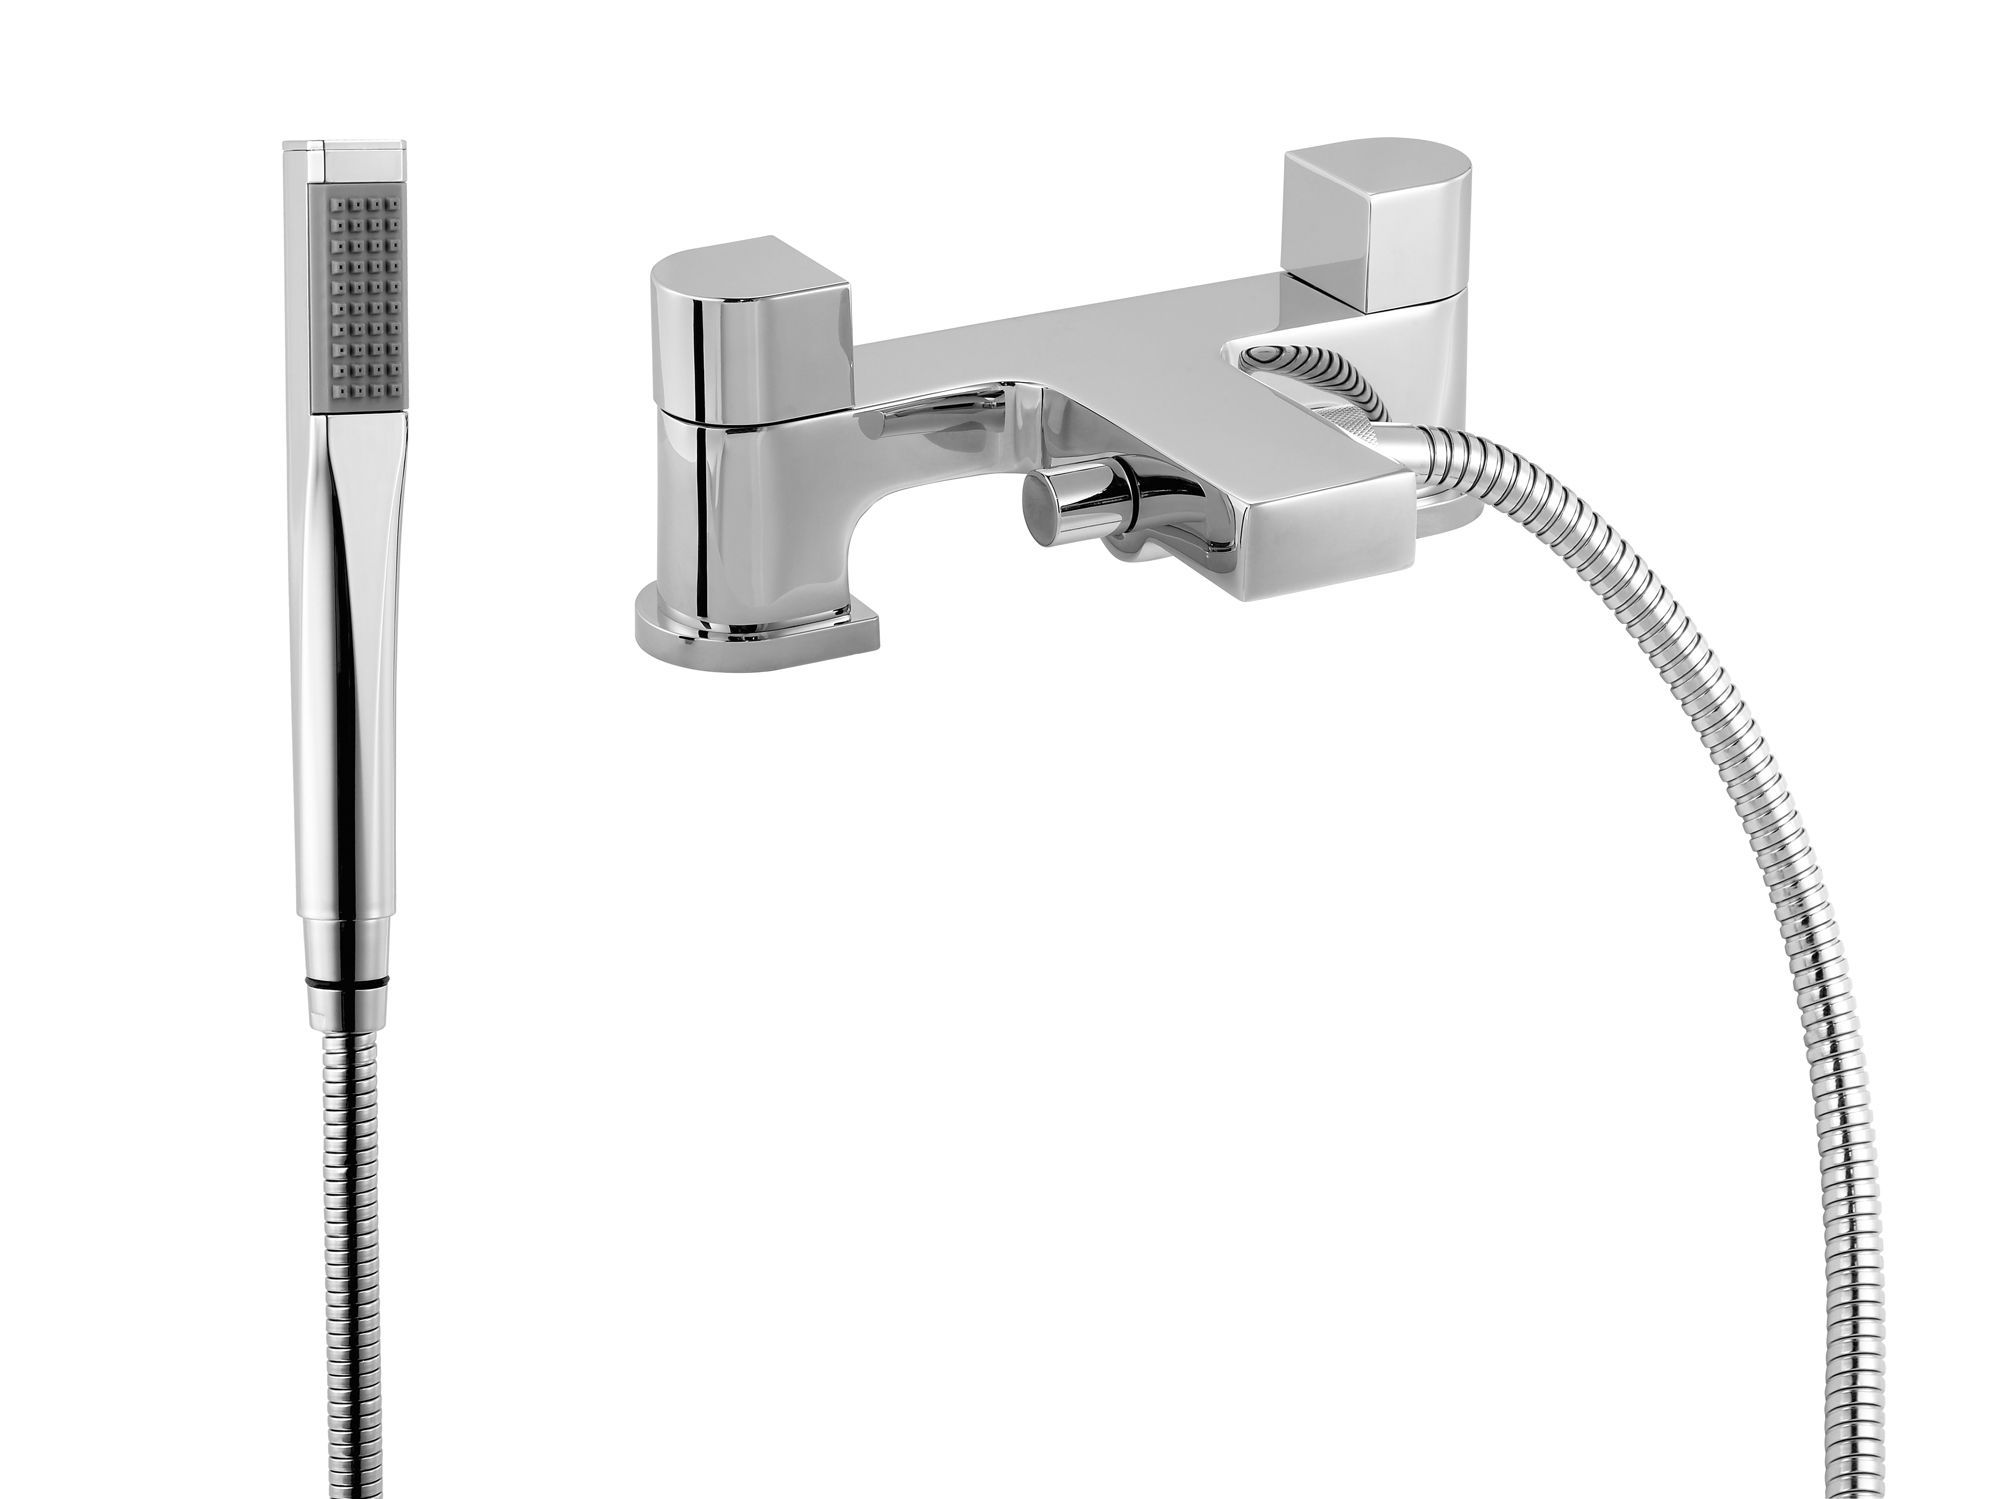 B&Q Mode Chrome Bath Shower Mixer Tap | Departments | DIY ...